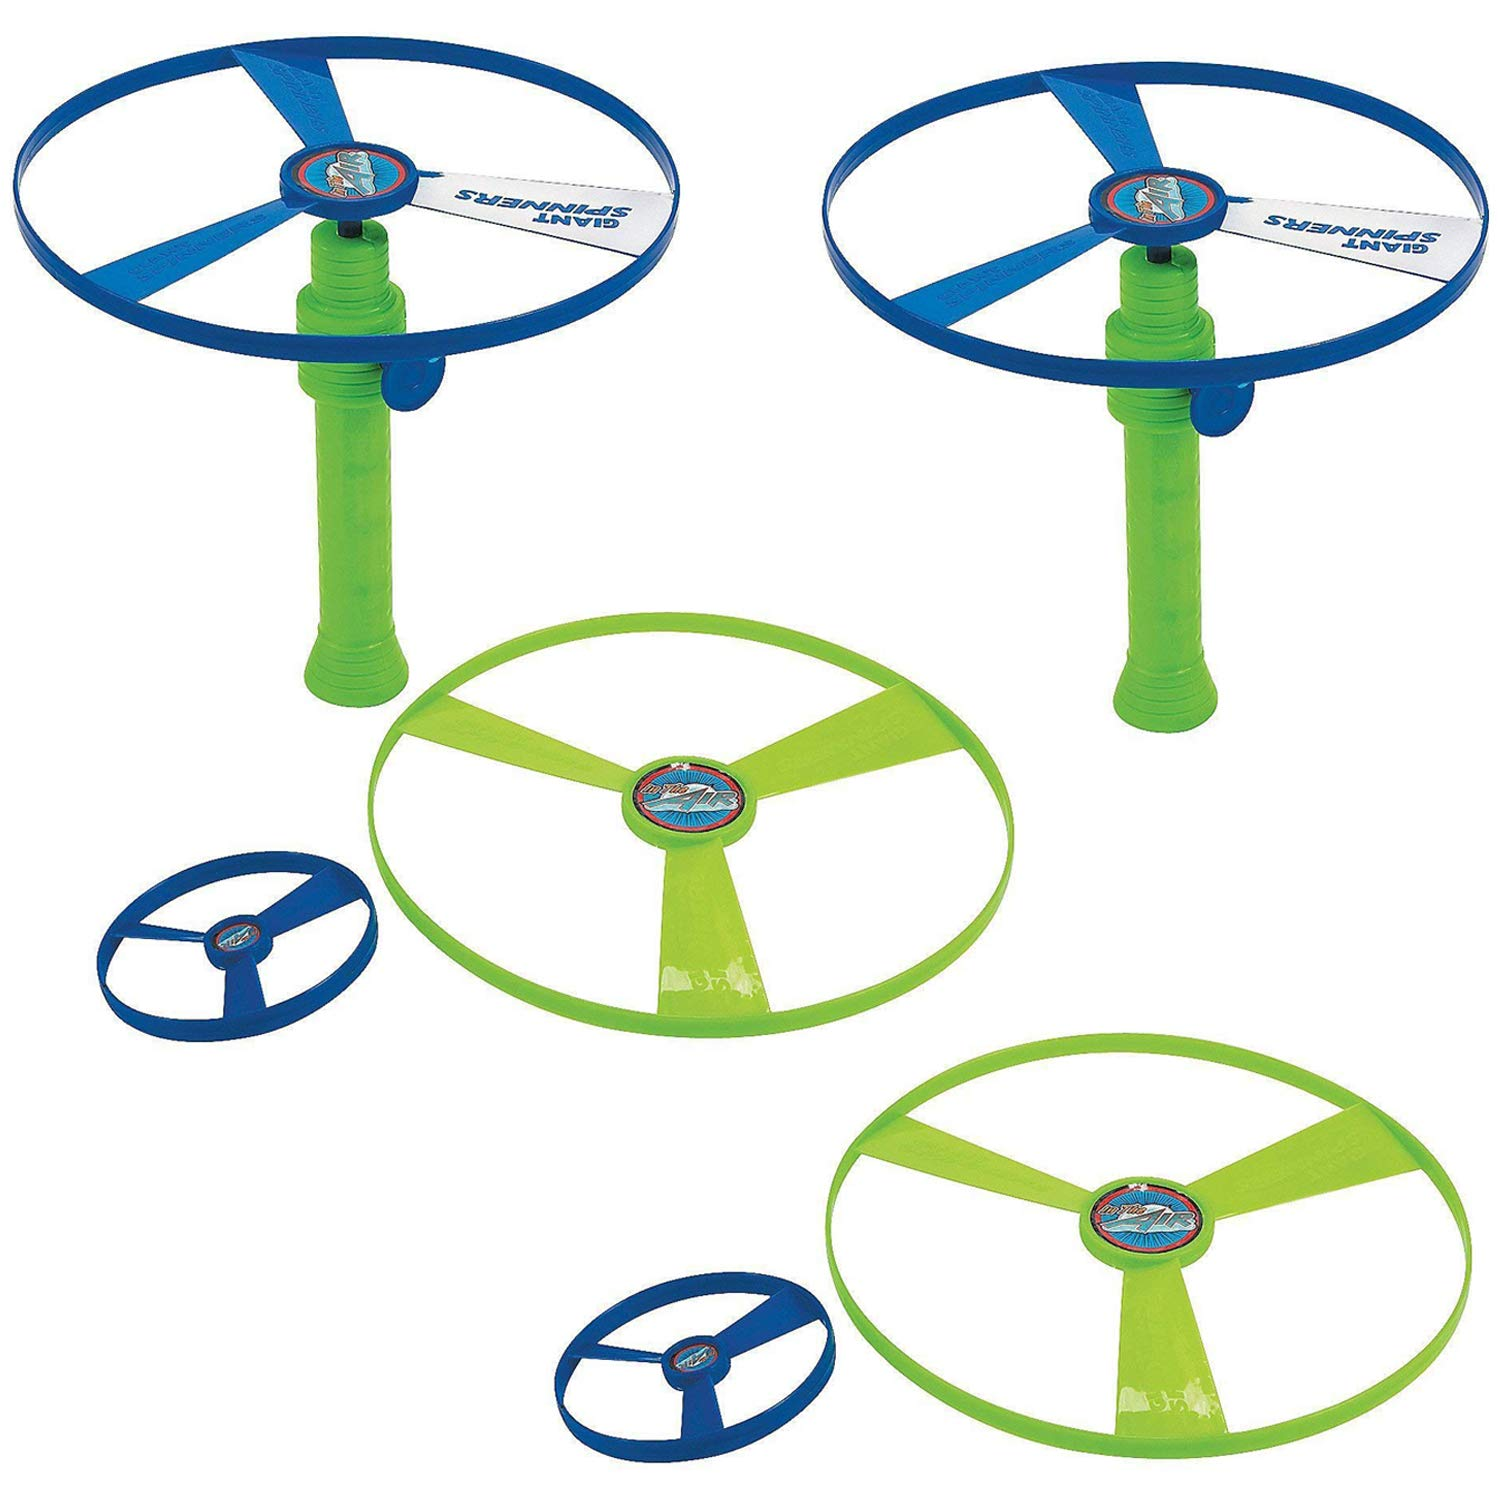 Kidsco Flying Saucer Toy Set Colors Green and Blue Bag Stuffers Gift Launcher 6.5 Fun Pack of 2 Disc 3 and 2 Discs 7.25 Toy Prize Launcher 6.5 Kayco USA 4 Piece Set for Kids Great Party Favors